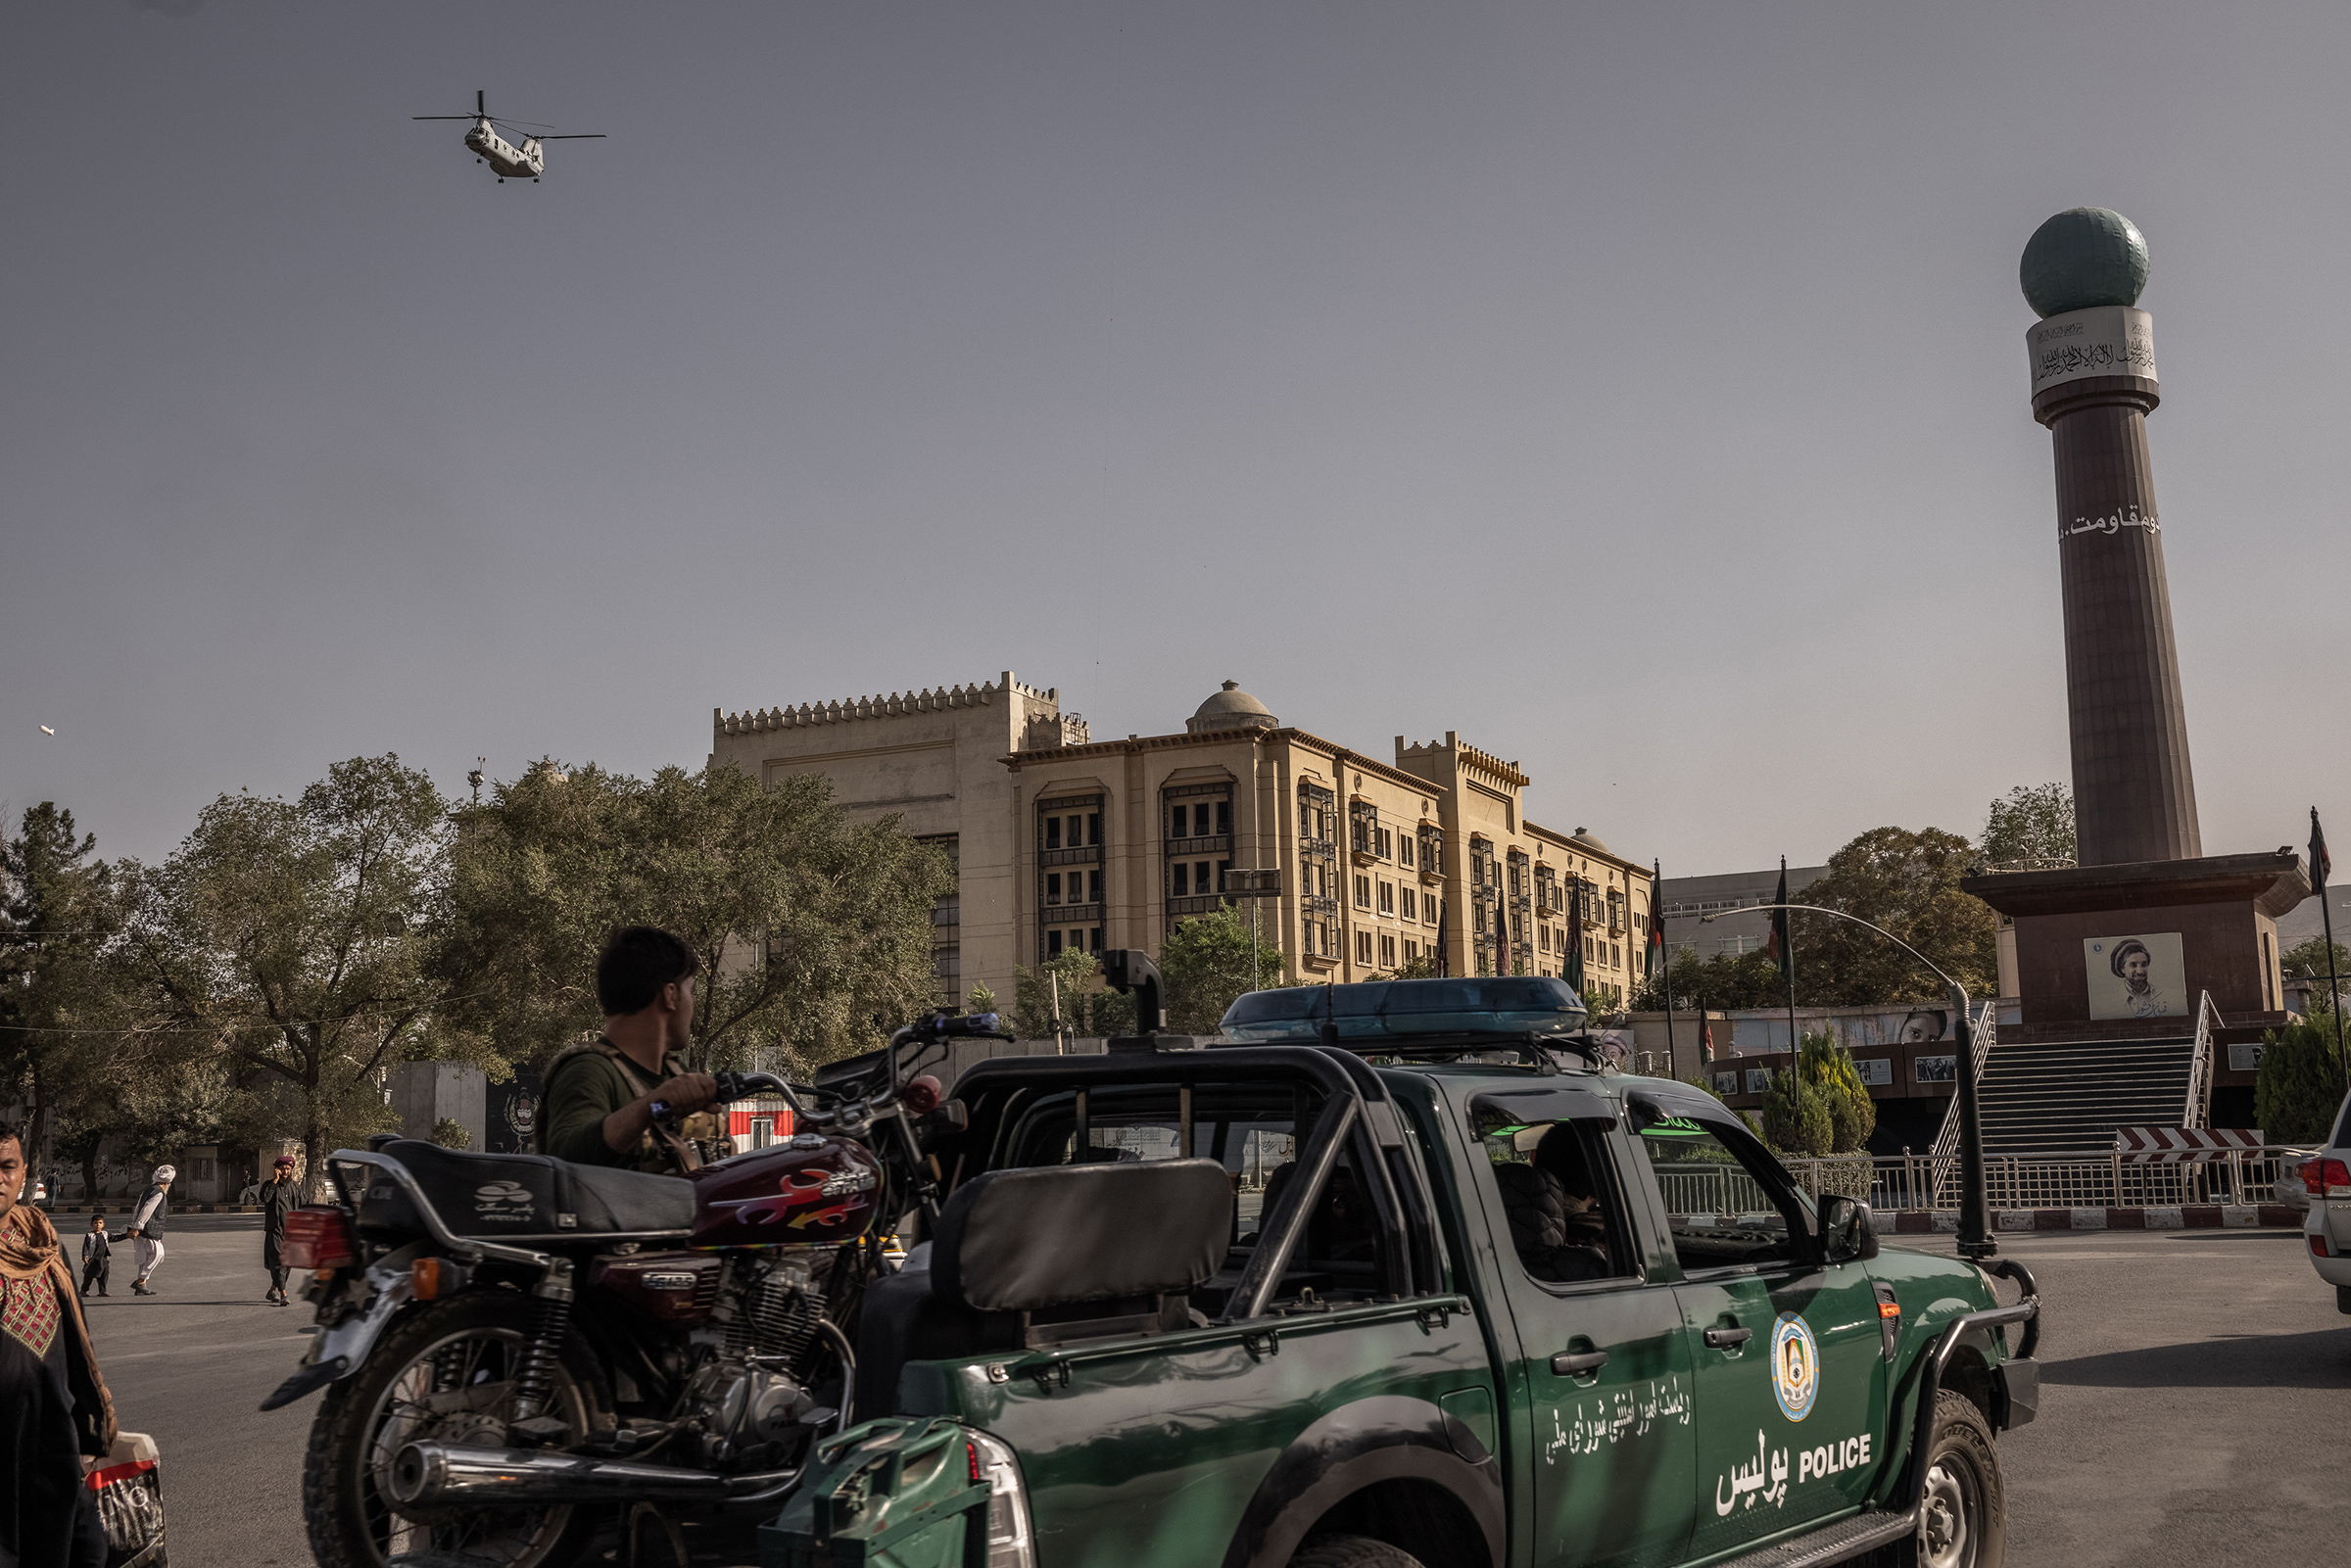 A helicopter leaves from the U.S. Embassy ahead of the Taliban's arrival in Kabul on Aug. 15.